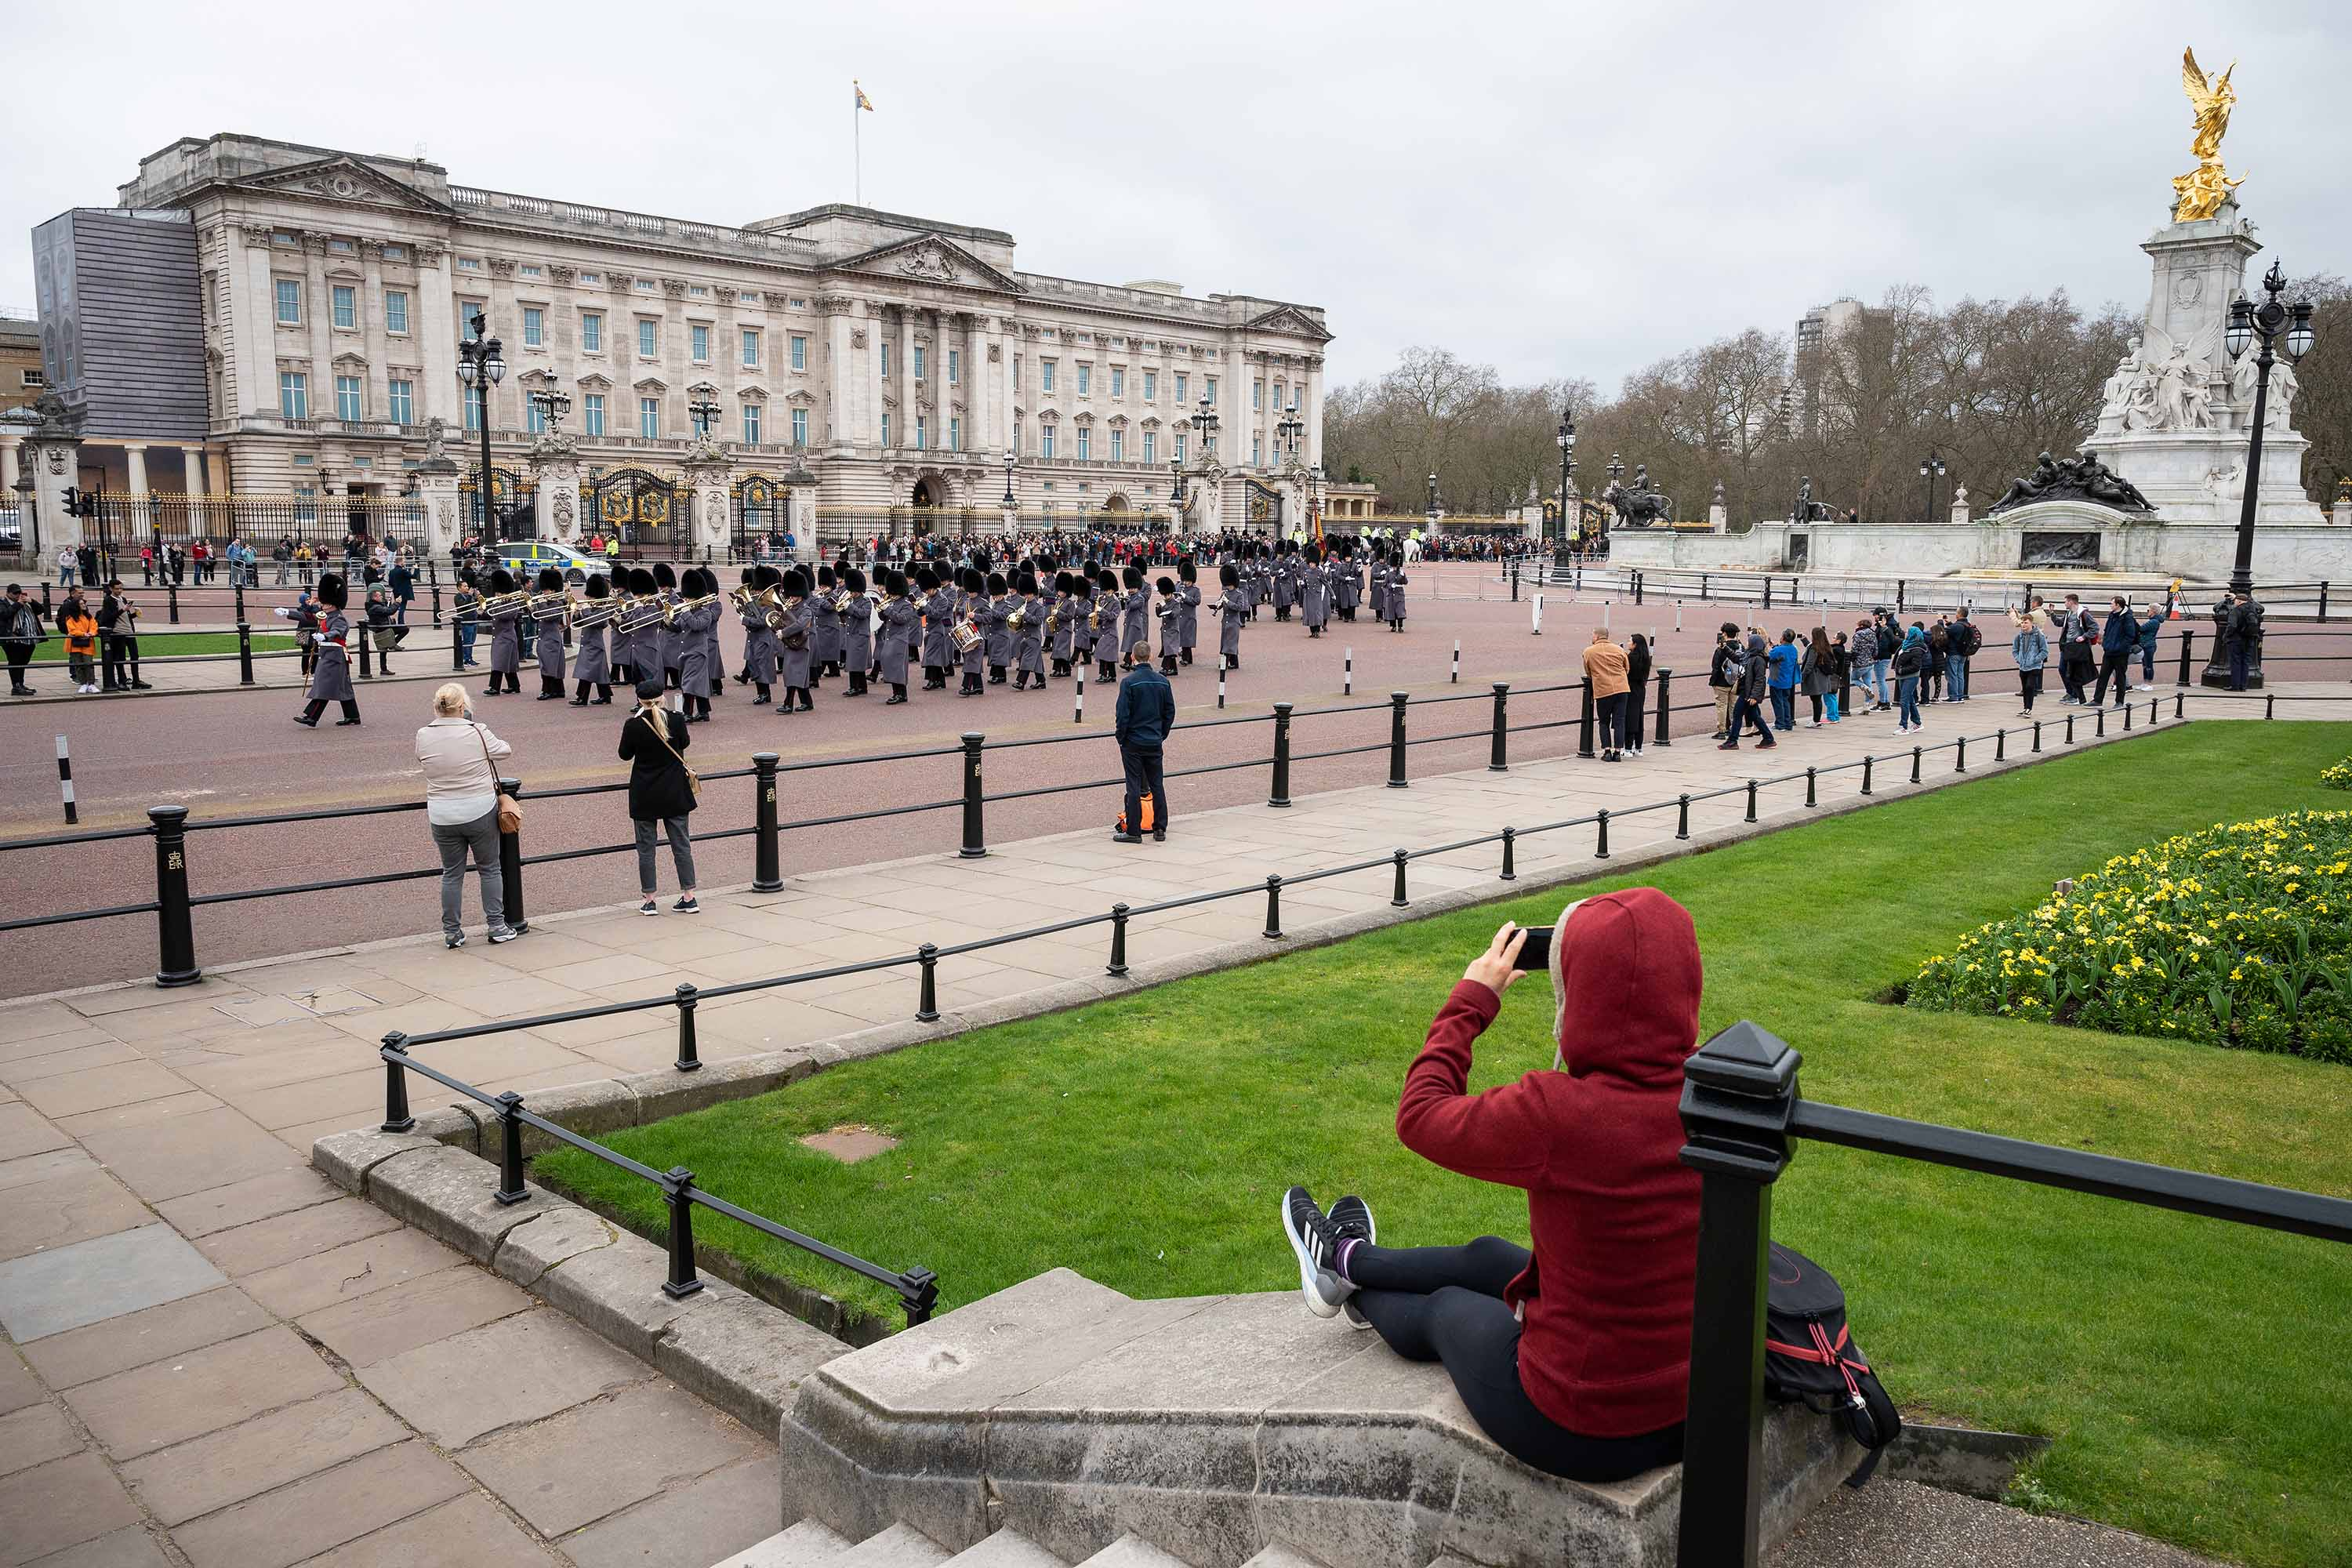 People watch the Changing of the Guard ceremony outside Buckingham Palace on March 18, in London, England.